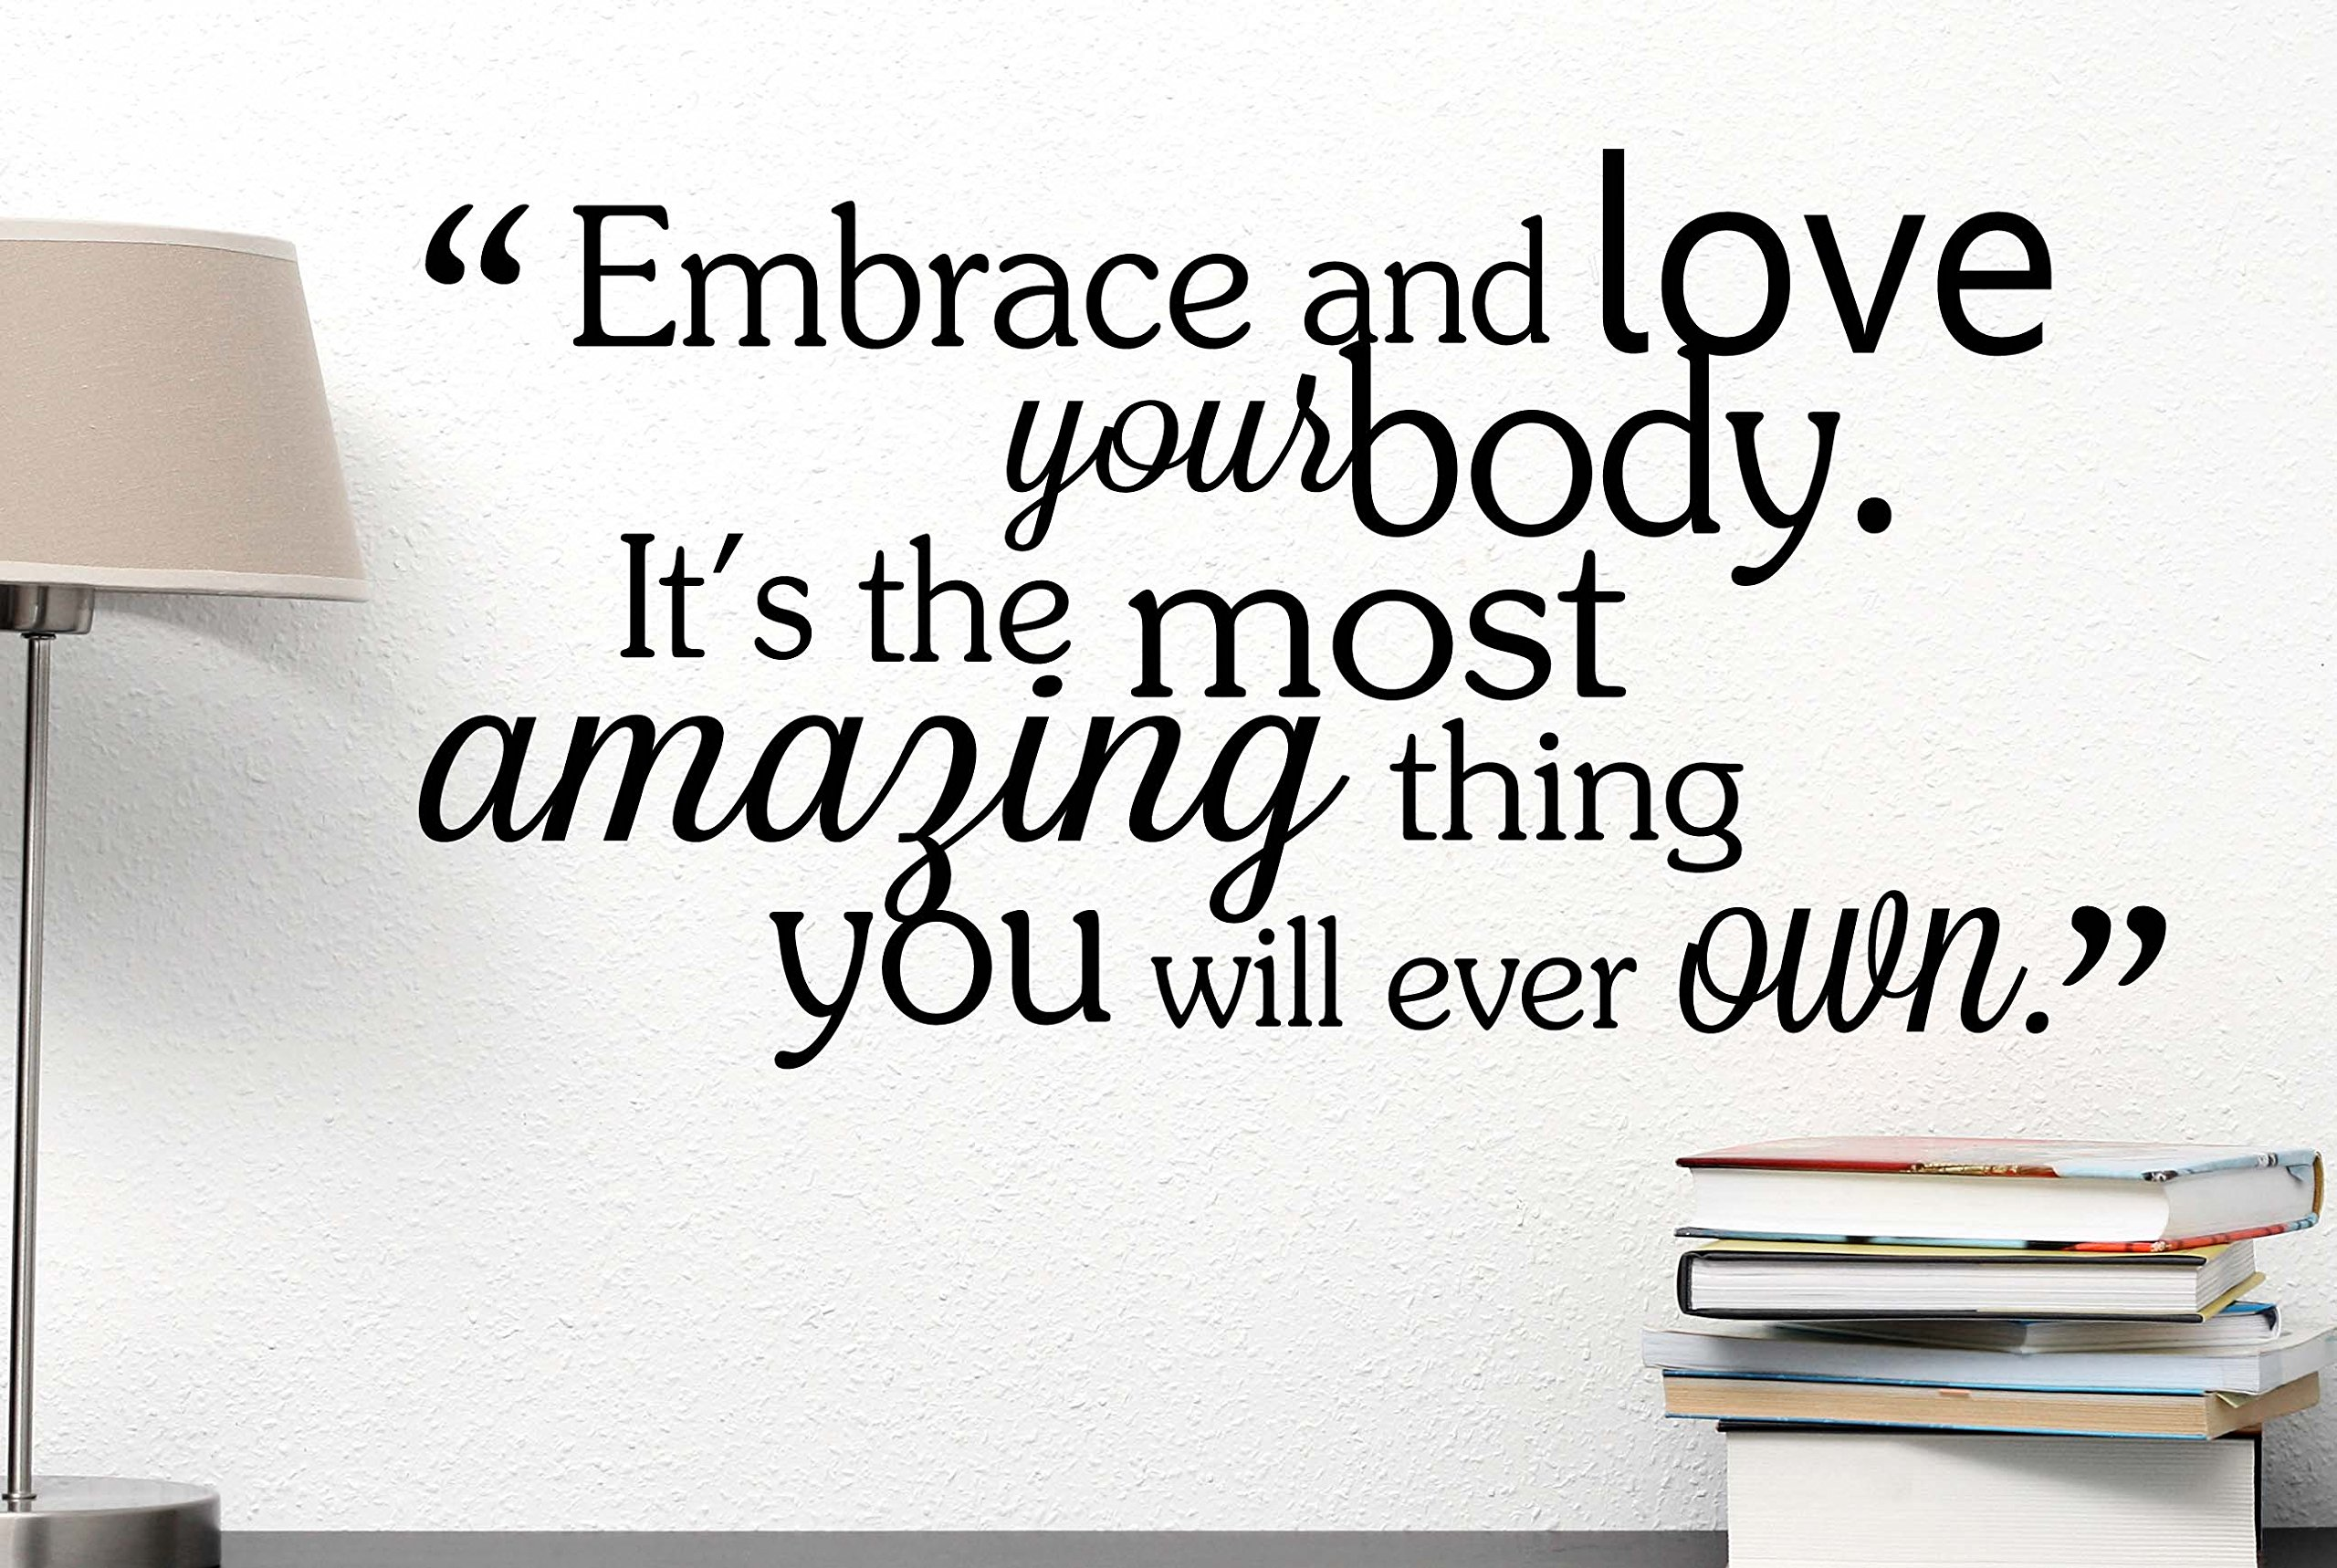 Embrace and love your body it's the most amazing thing you will ever own. cute Wall Vinyl Decal Spa inspirational Quote Art Saying lettering motivational gym Sticker stencil wall decor art